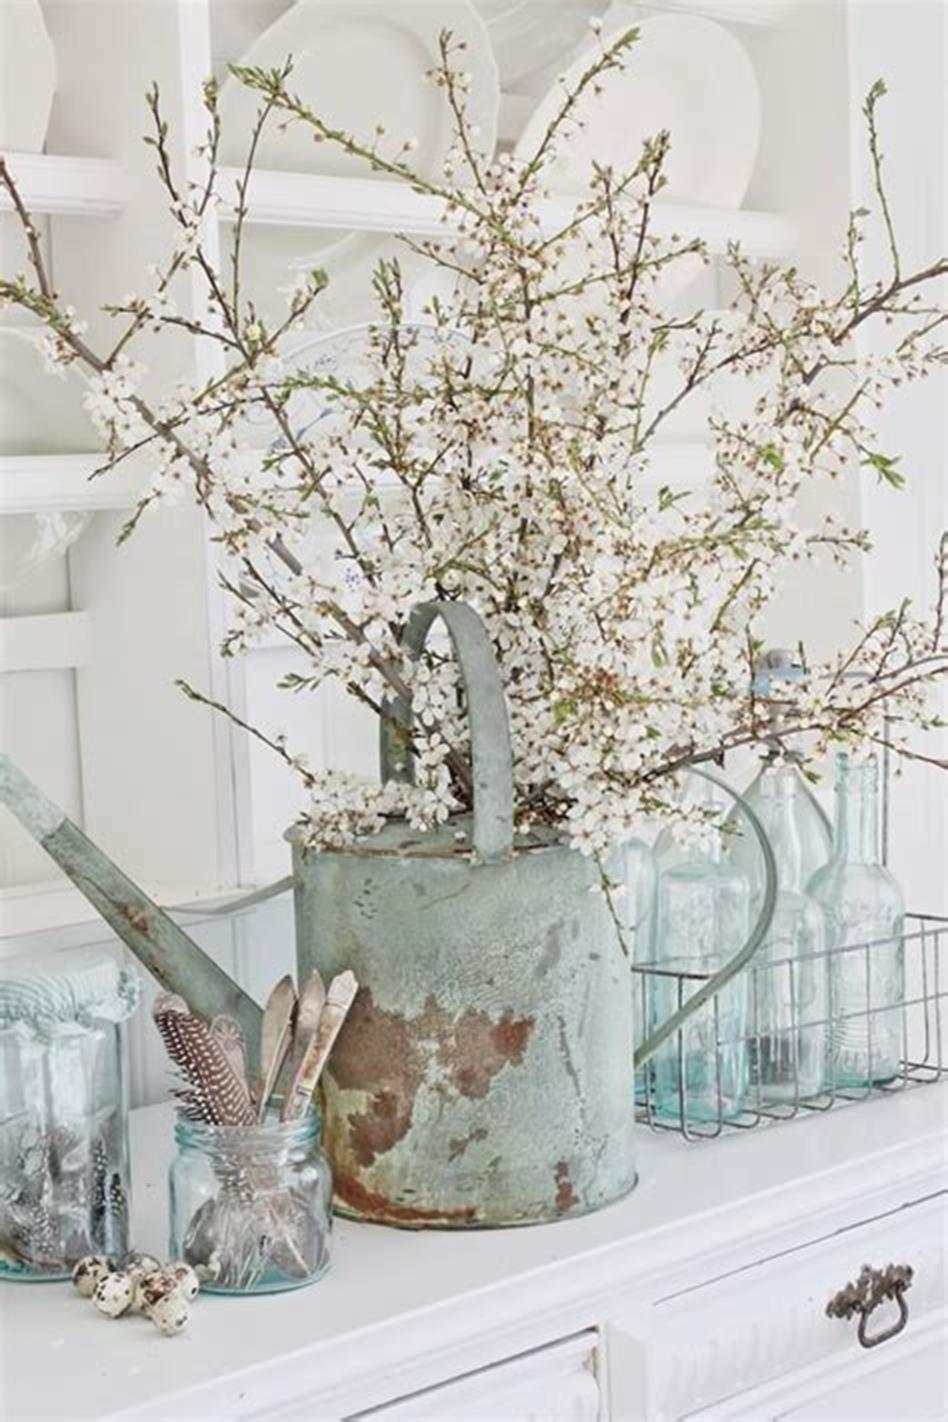 37 Beautiful Farmhouse Spring Decorating Ideas On a Budget for 2019 30